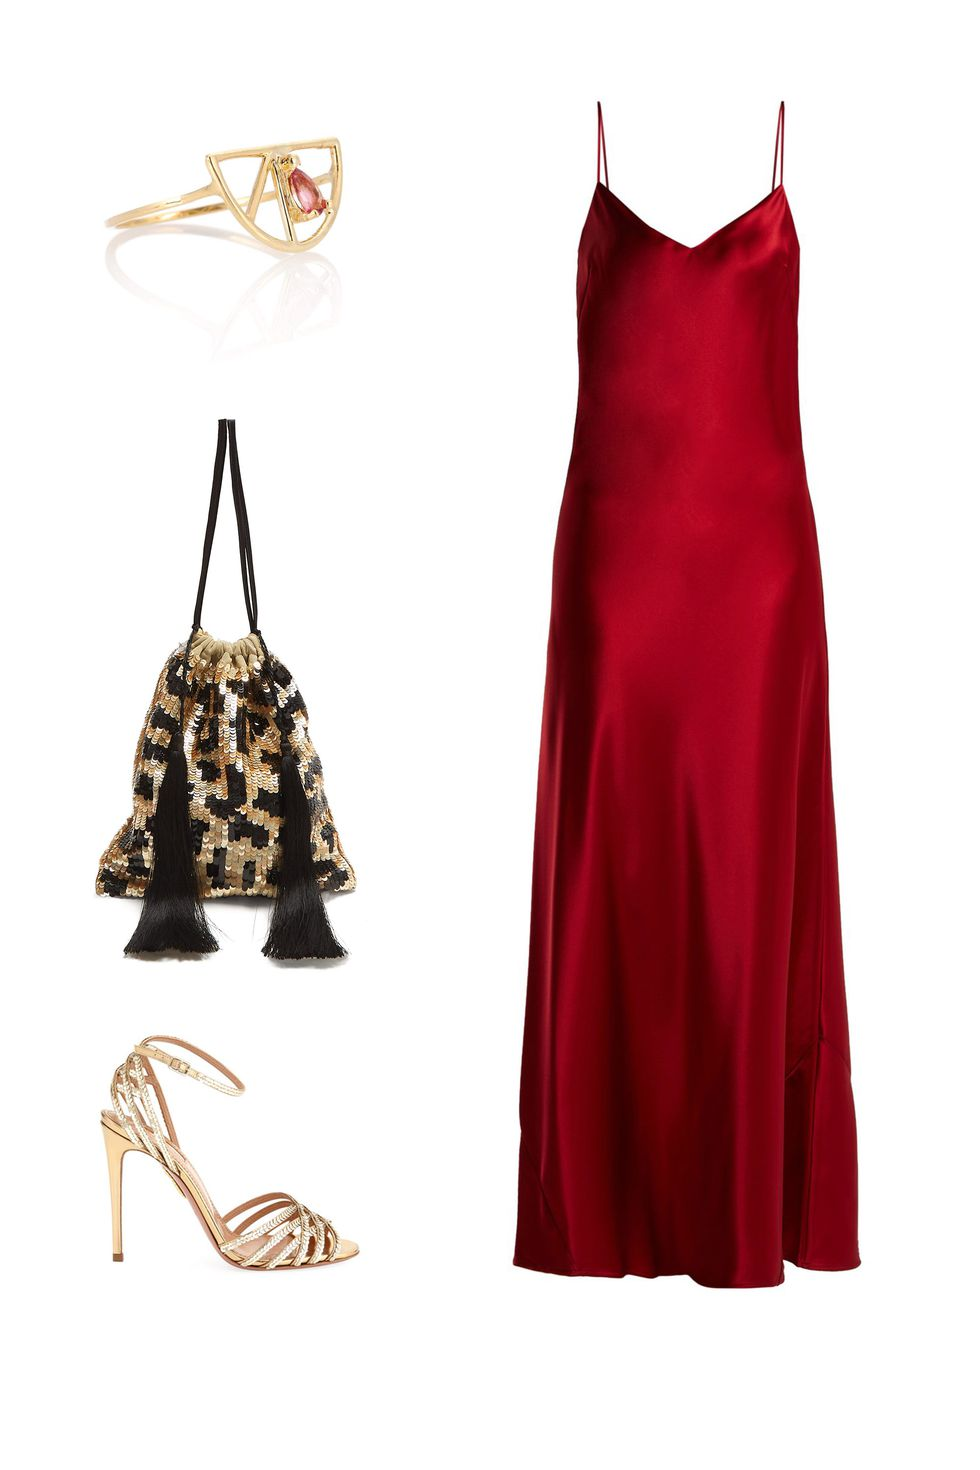 what-to-wear-for-a-fall-wedding-guest-outfit-autumn-red-dress-slip-midi-tan-bag-gold-tan-shoe-sandalh-dinner.jpg